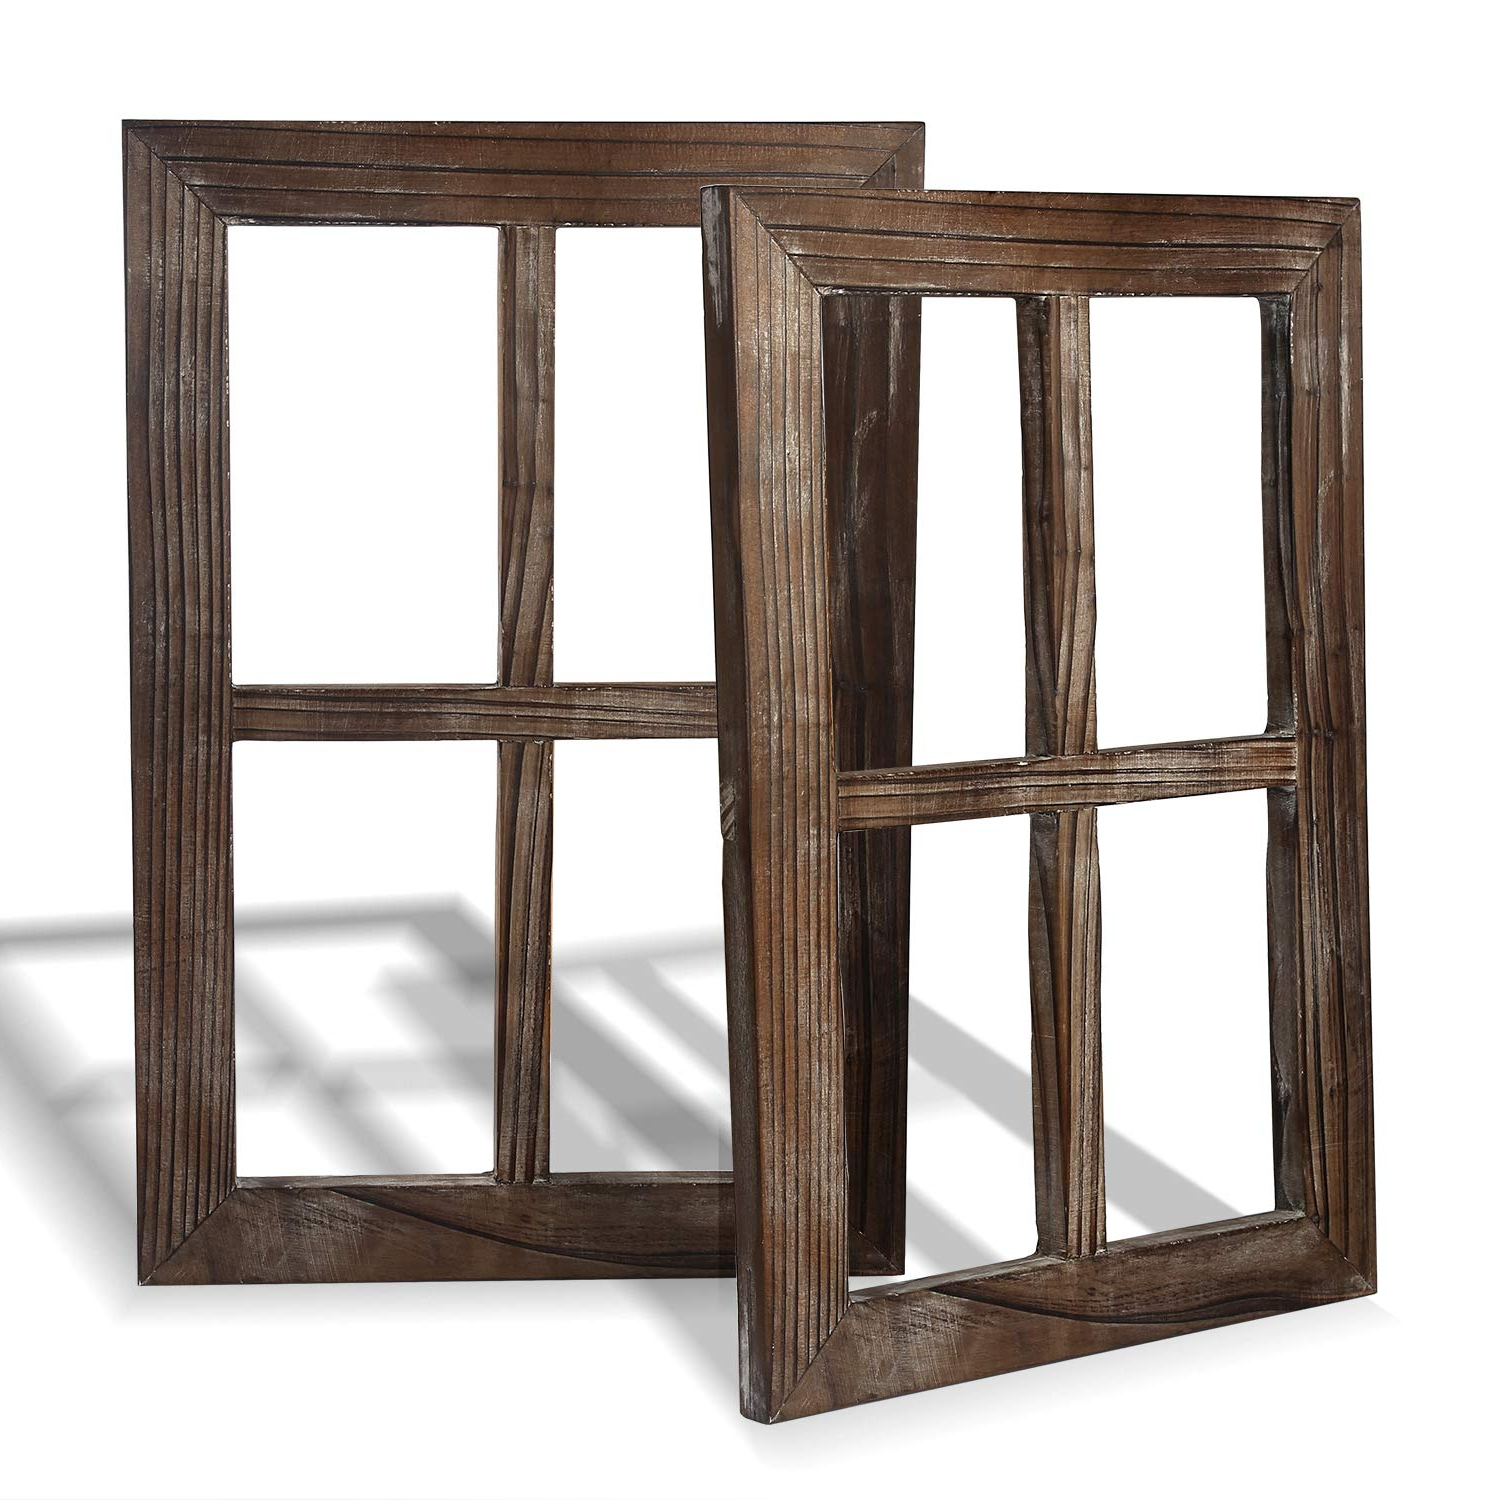 Favorite Old Rustic Barn Window Frame Pertaining To Amazon: Cade Rustic Wall Decor Window Barnwood Frames  Farmhouse (Gallery 5 of 20)